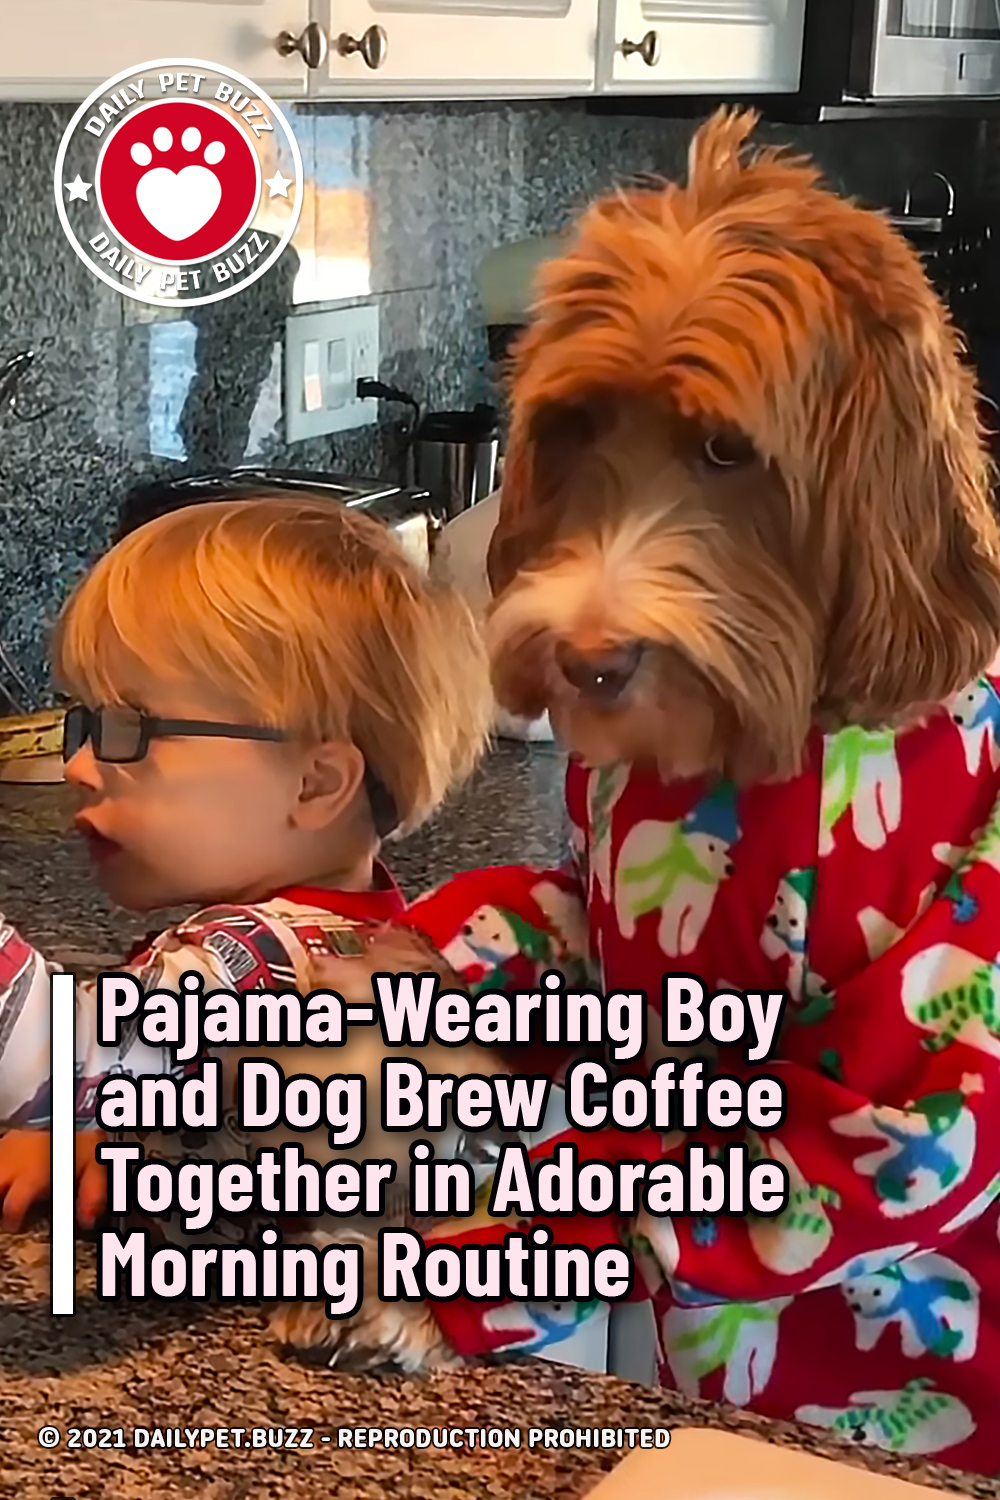 Pajama-Wearing Boy and Dog Brew Coffee Together in Adorable Morning Routine